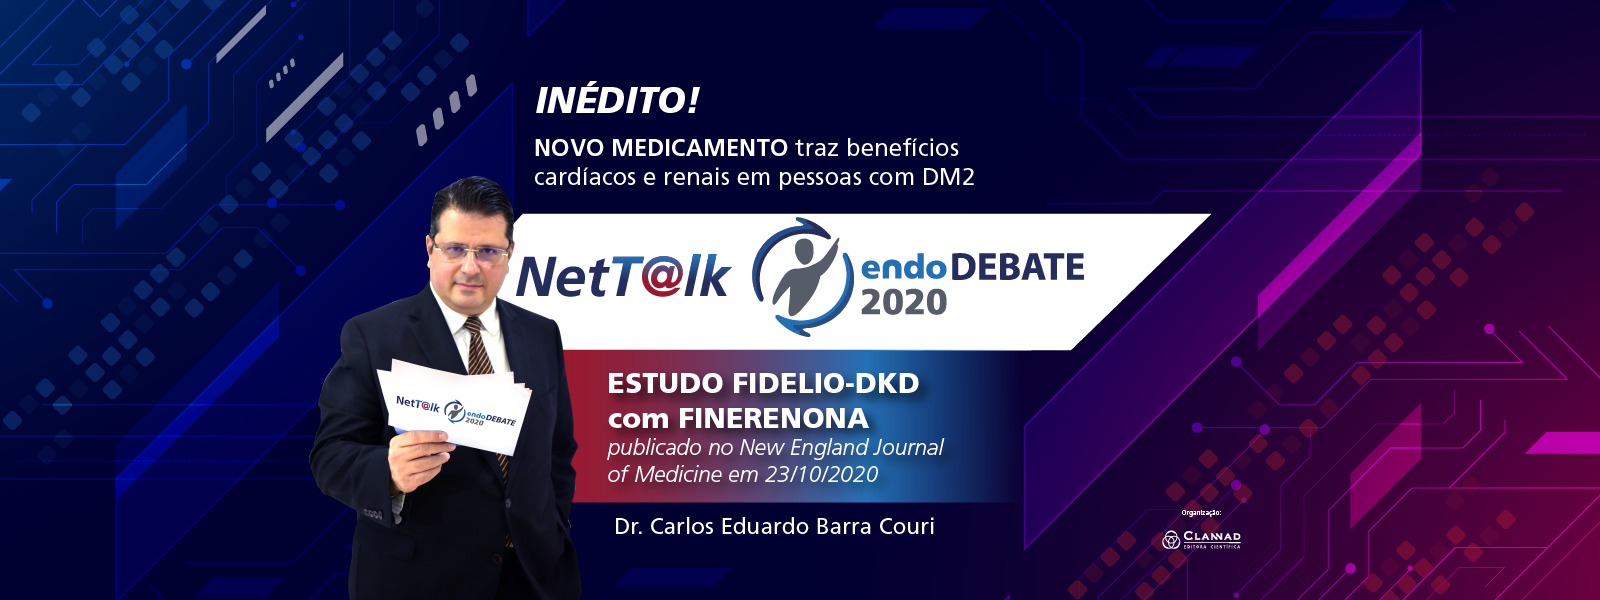 NetTalk-banner inedito-SAVE THE DATE